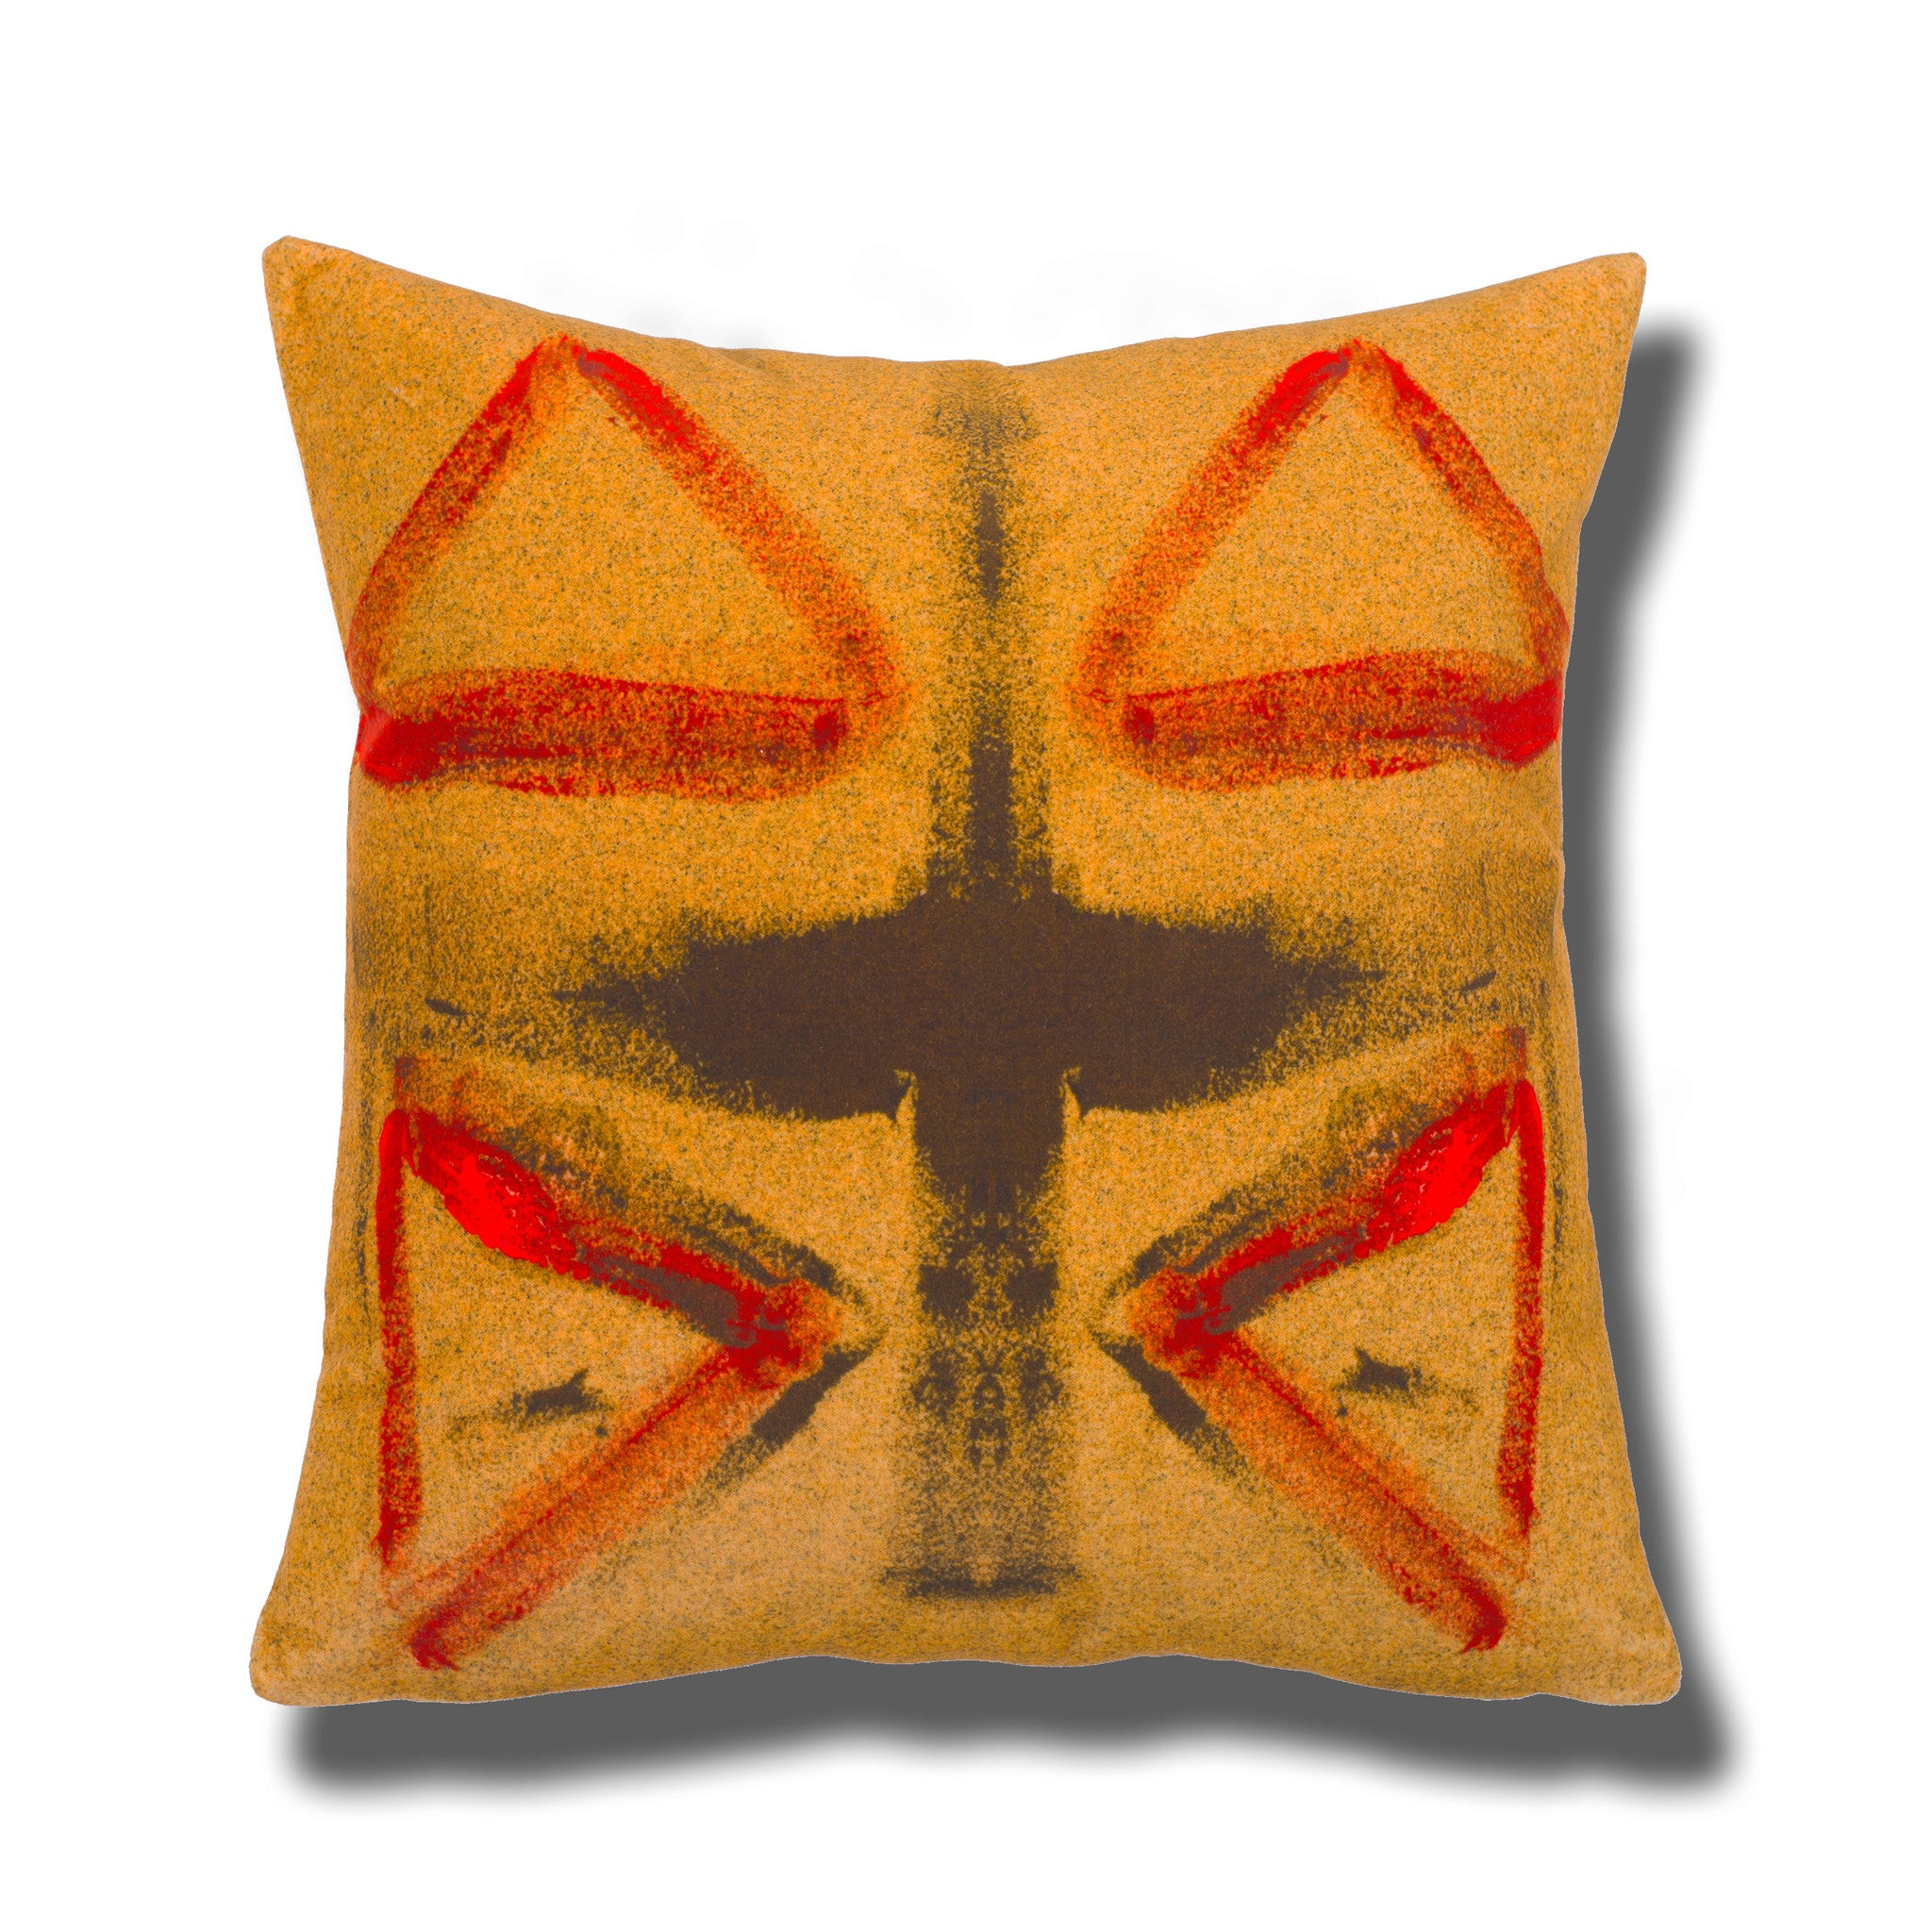 FifteenFifteen, Fiest, luxury cushions, cheap pillow, affordable designer cushion, English design, made in London, buy discount cushions online, London designer, budget cushions, multicoloured cushion, multicolored pillow, scatter pillows online, square cushion, 45cm, online décor store, home furnishing,  crescendo collection, indigo, red cushion, exposed zip, silk cushion, velvet cushion, living room cushion, bedroom cushion, arm chair cushion, eclectic style, tribal design, décor website